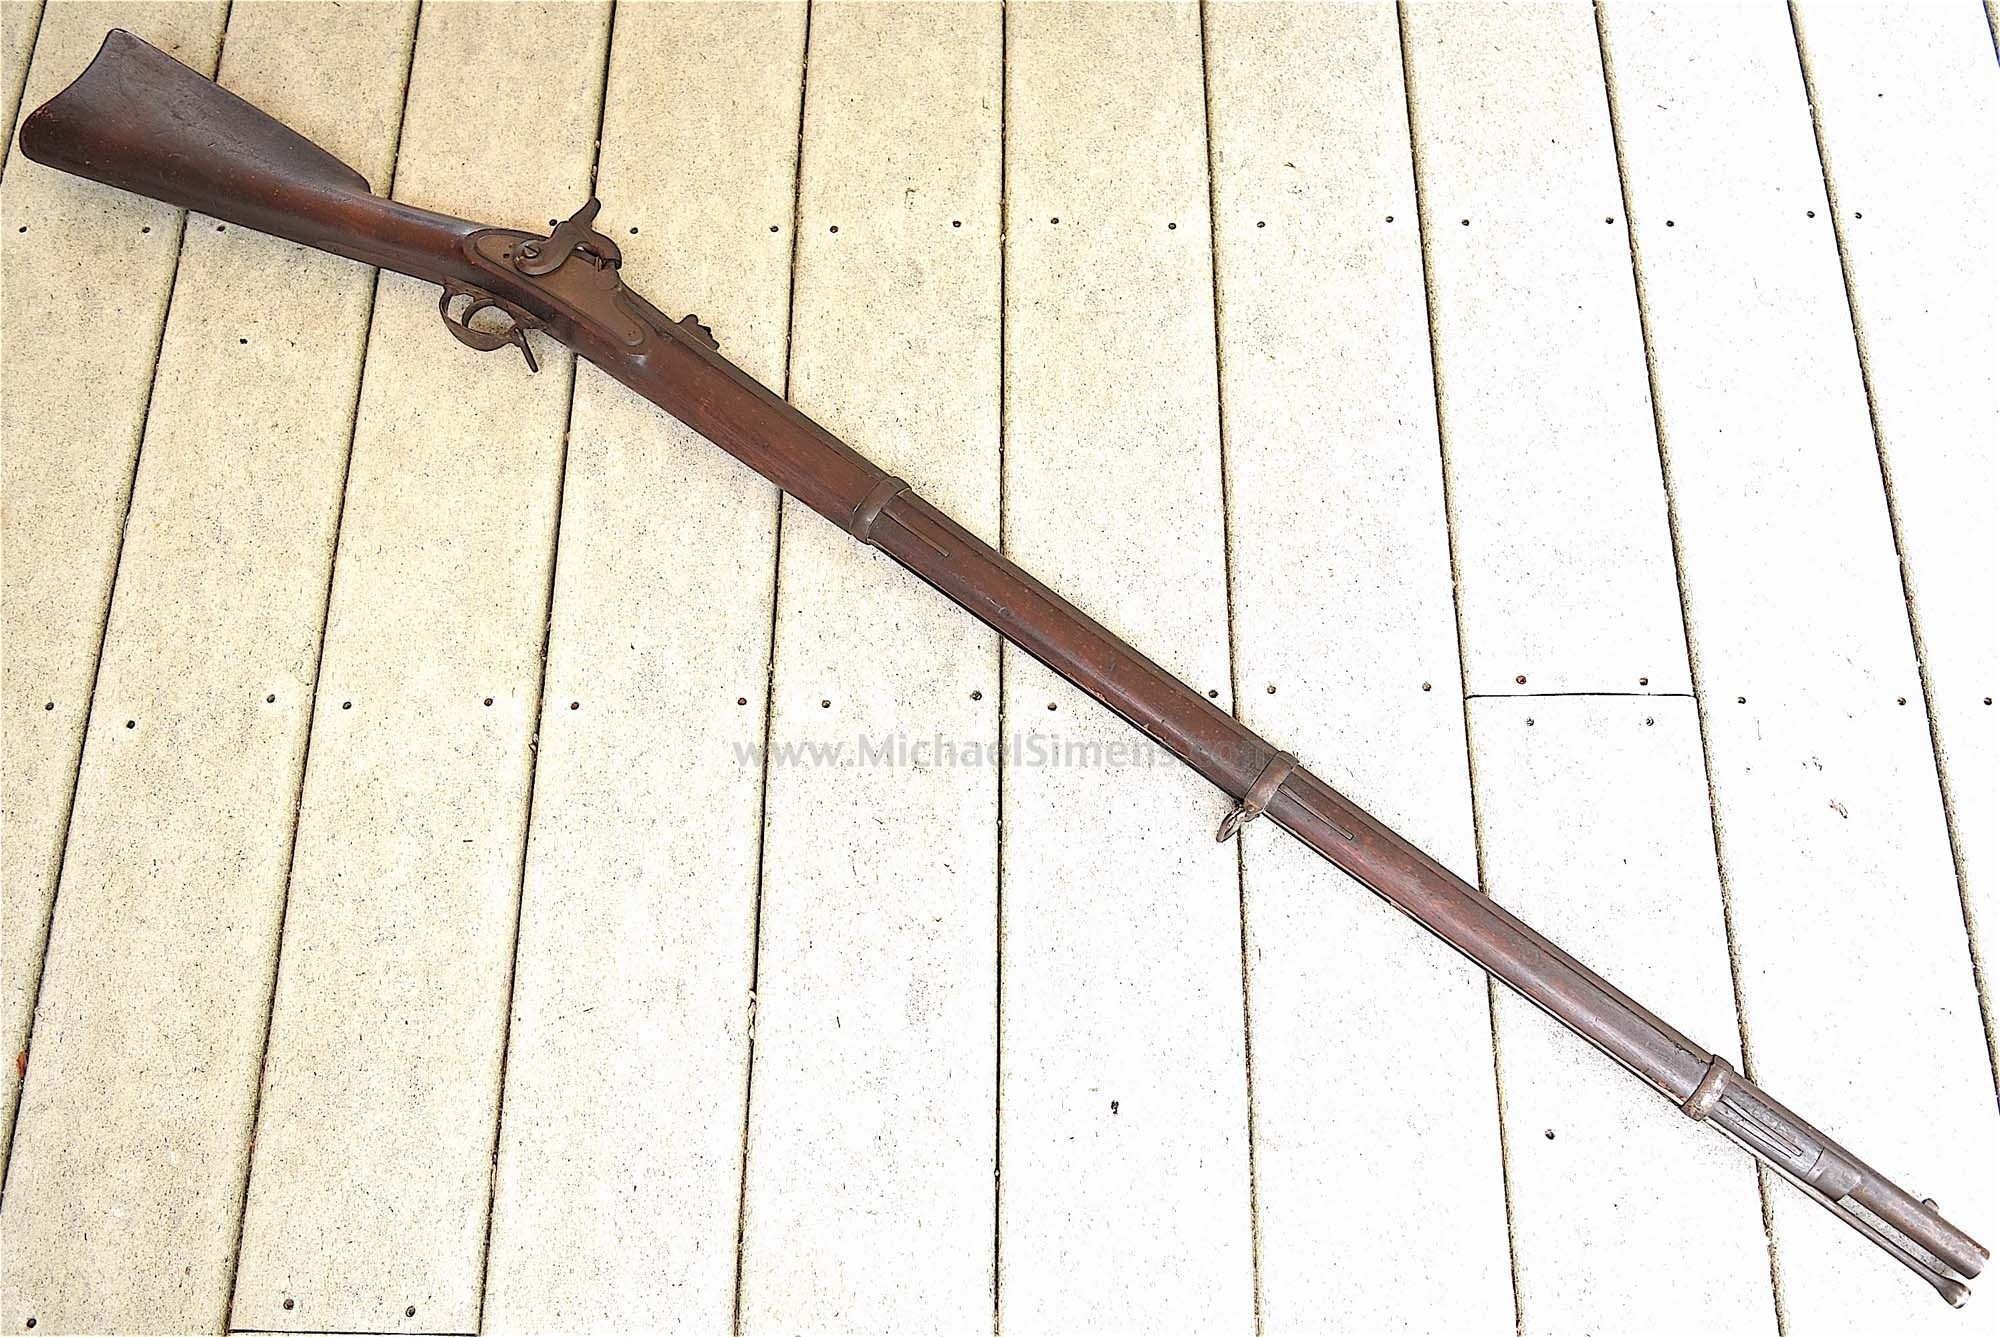 UNTOUCHED CIVIL WAR 1862 SPRINGFIELD RIFLED MUSKET